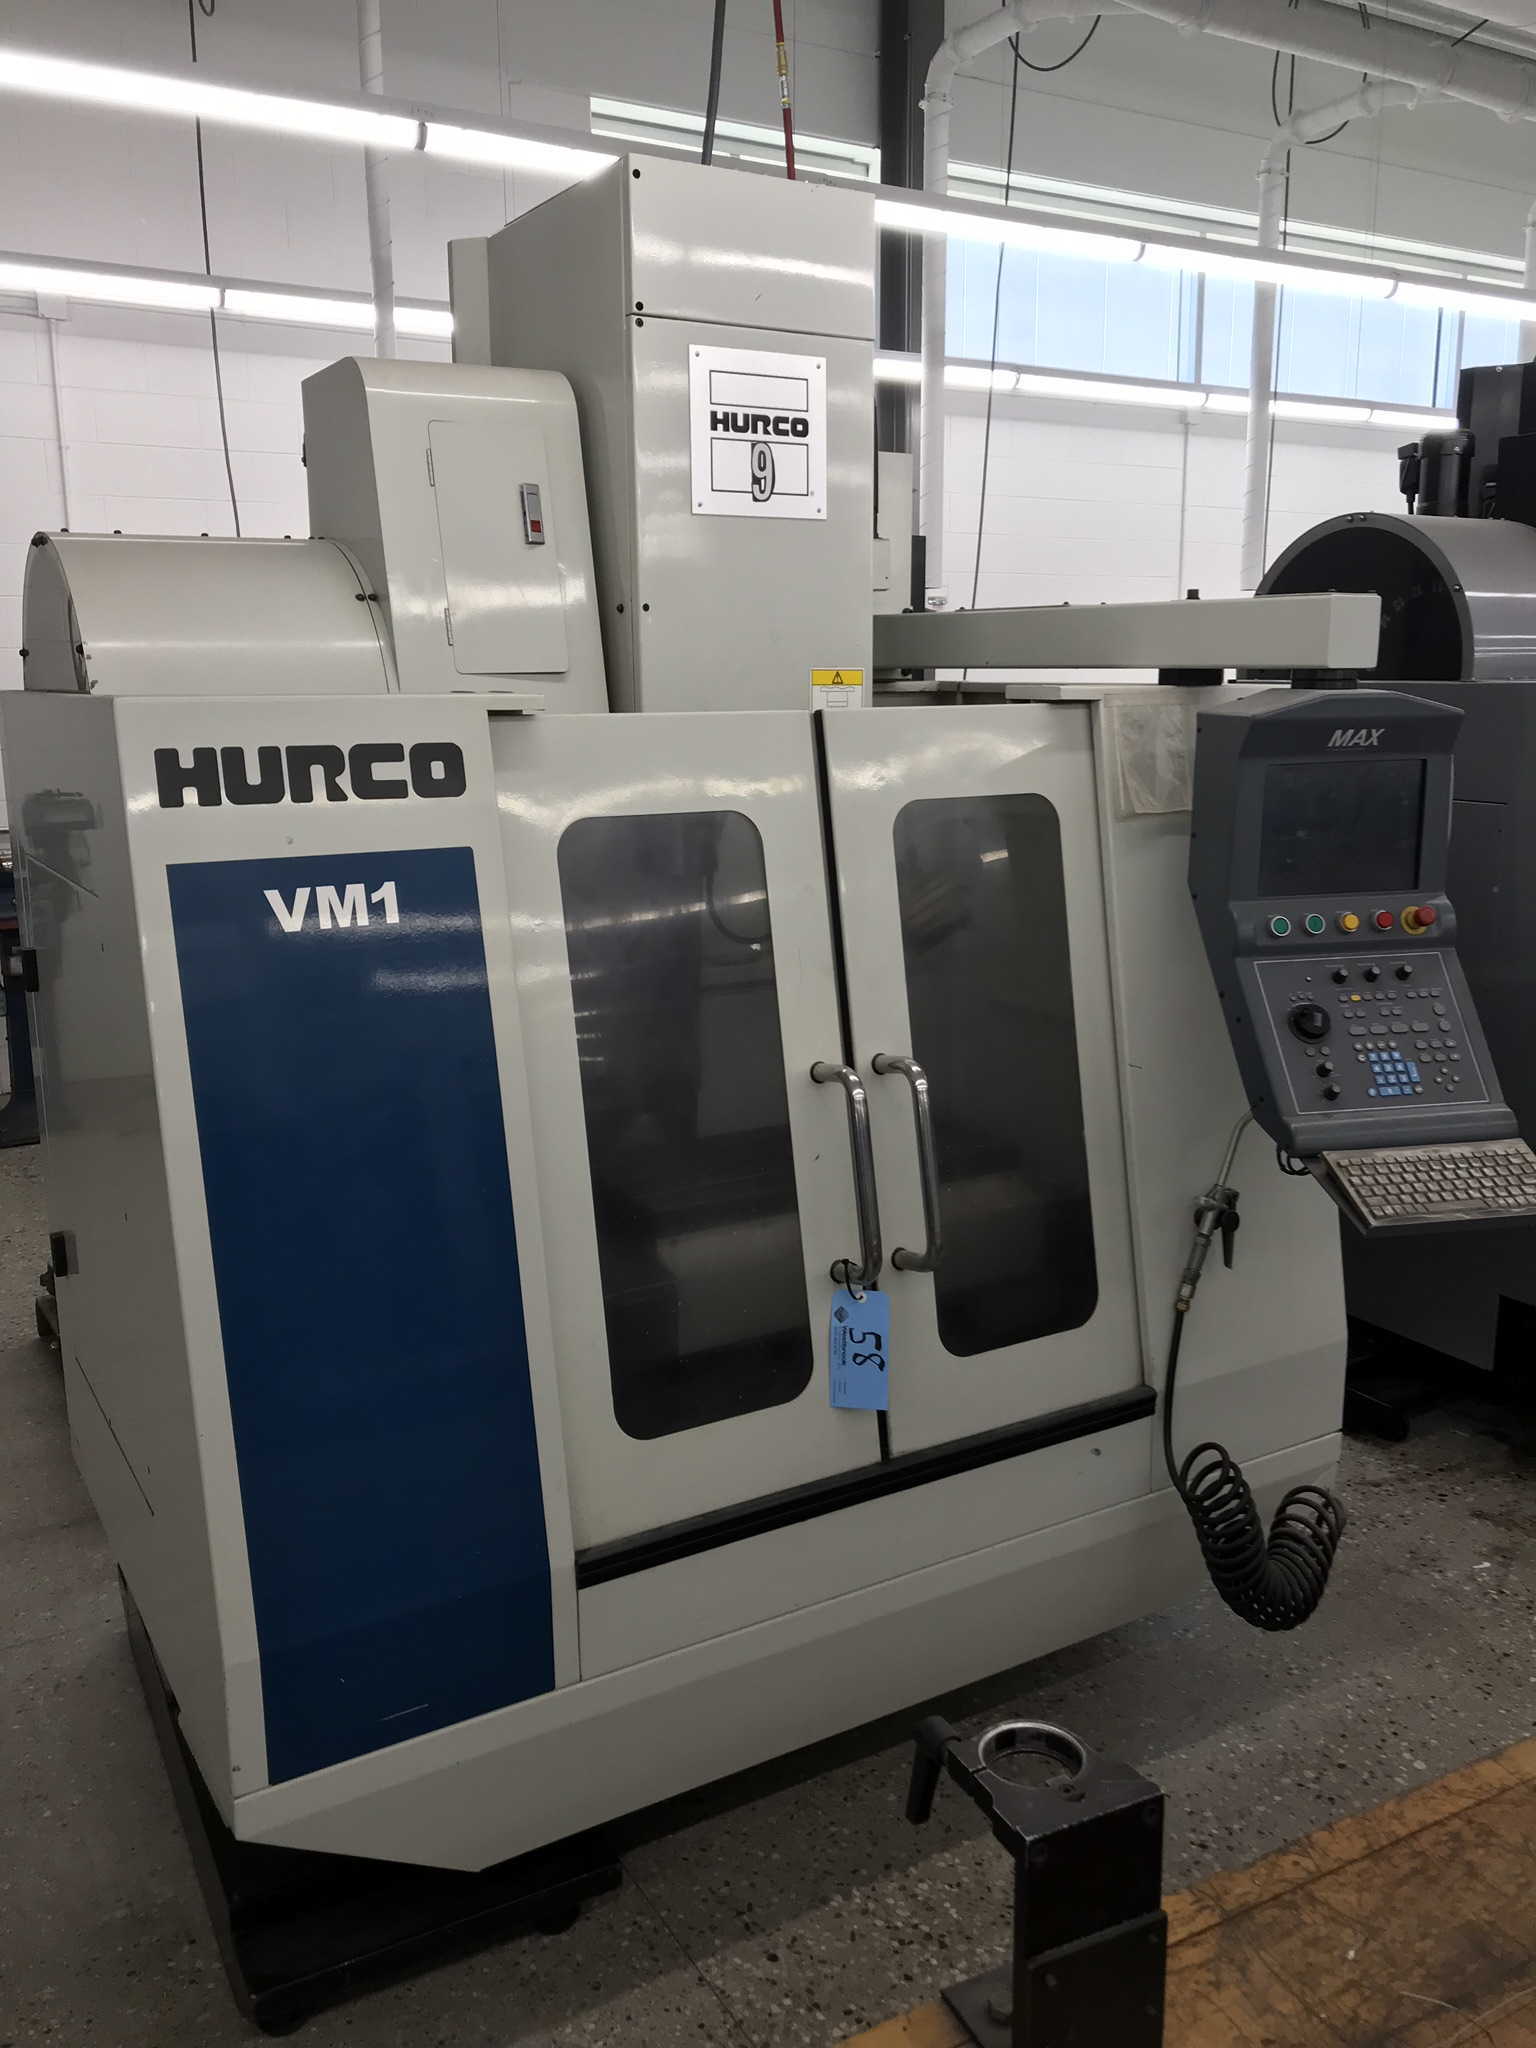 Hurco VM-1 CNC Vertical Machining Center, Spindle Recently Replaced, Approx 6,500 Hours, Max Control